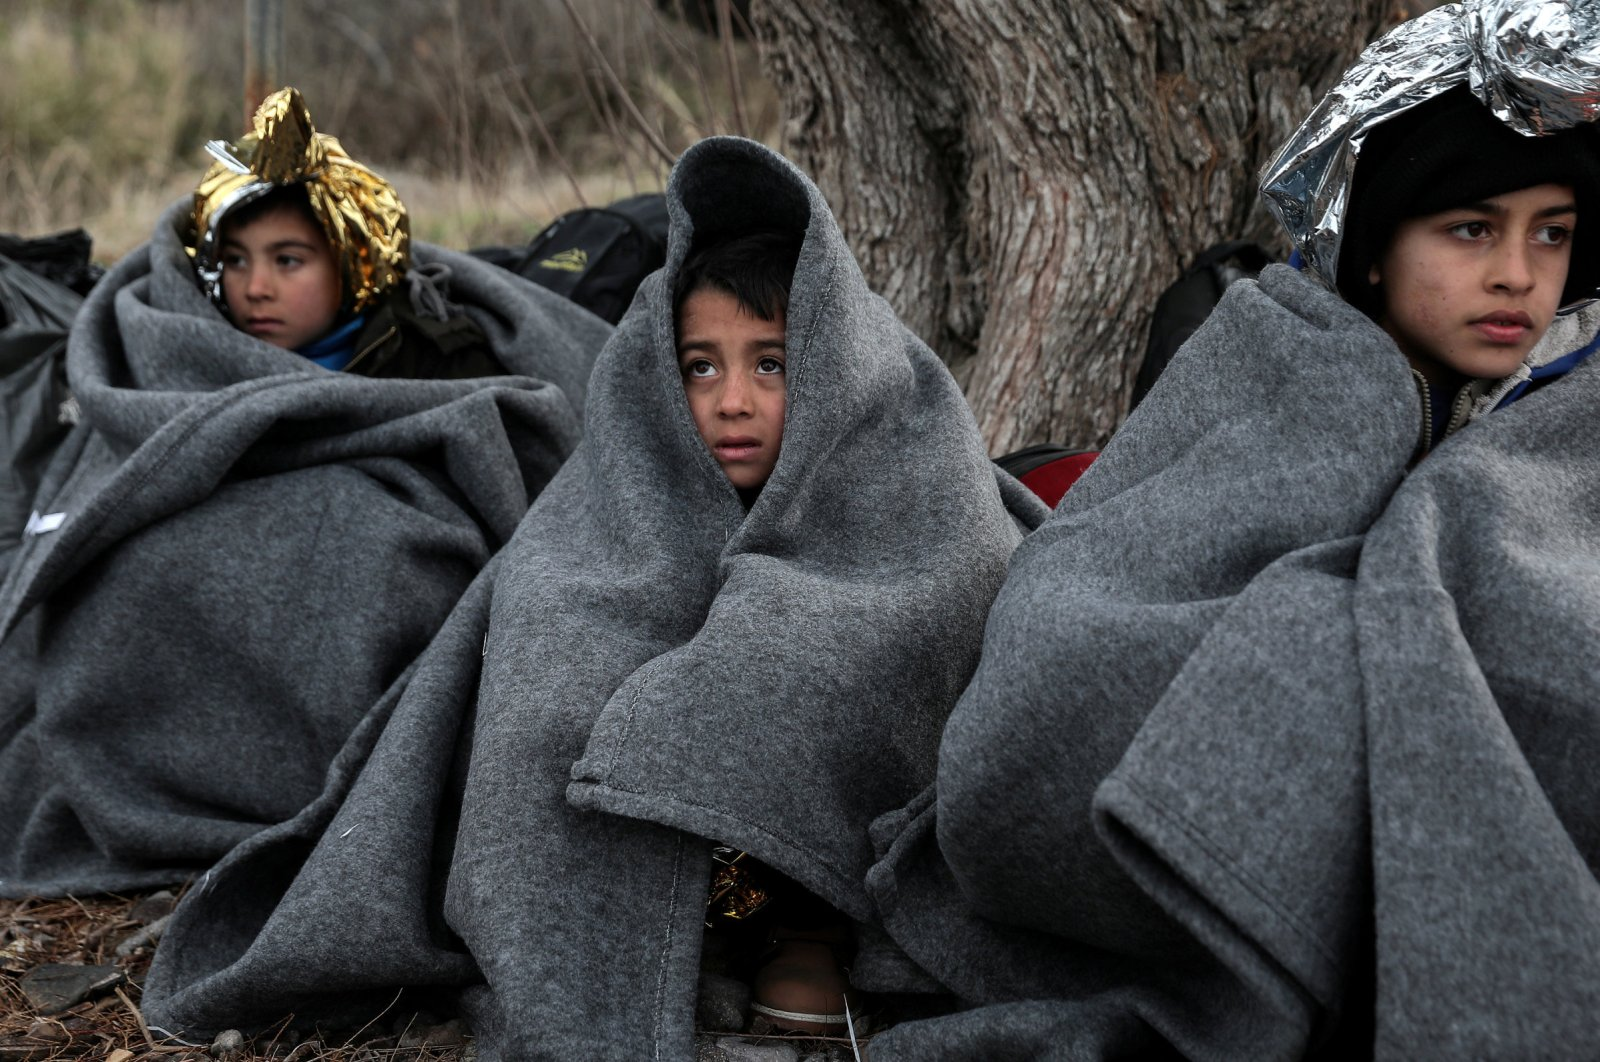 Children are covered with blankets and thermal blankets after migrants from Afghanistan arrived on a dinghy on a beach near the village of Skala Sikamias on the island of Lesbos, Greece, Feb. 28, 2020. (REUTERS Photo)